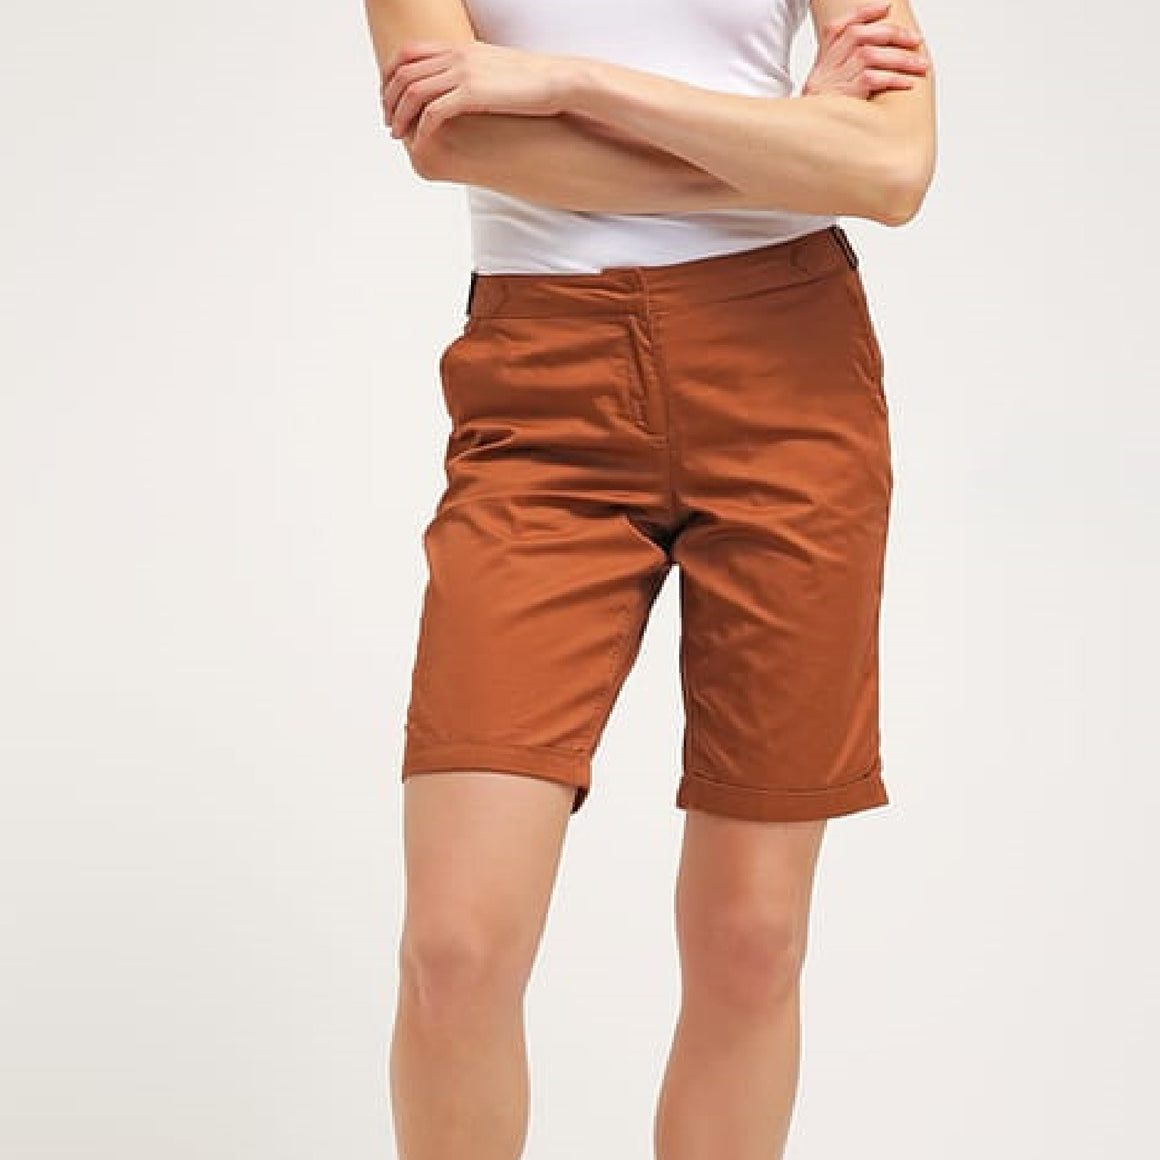 Ladies Knee Shorts - Copper